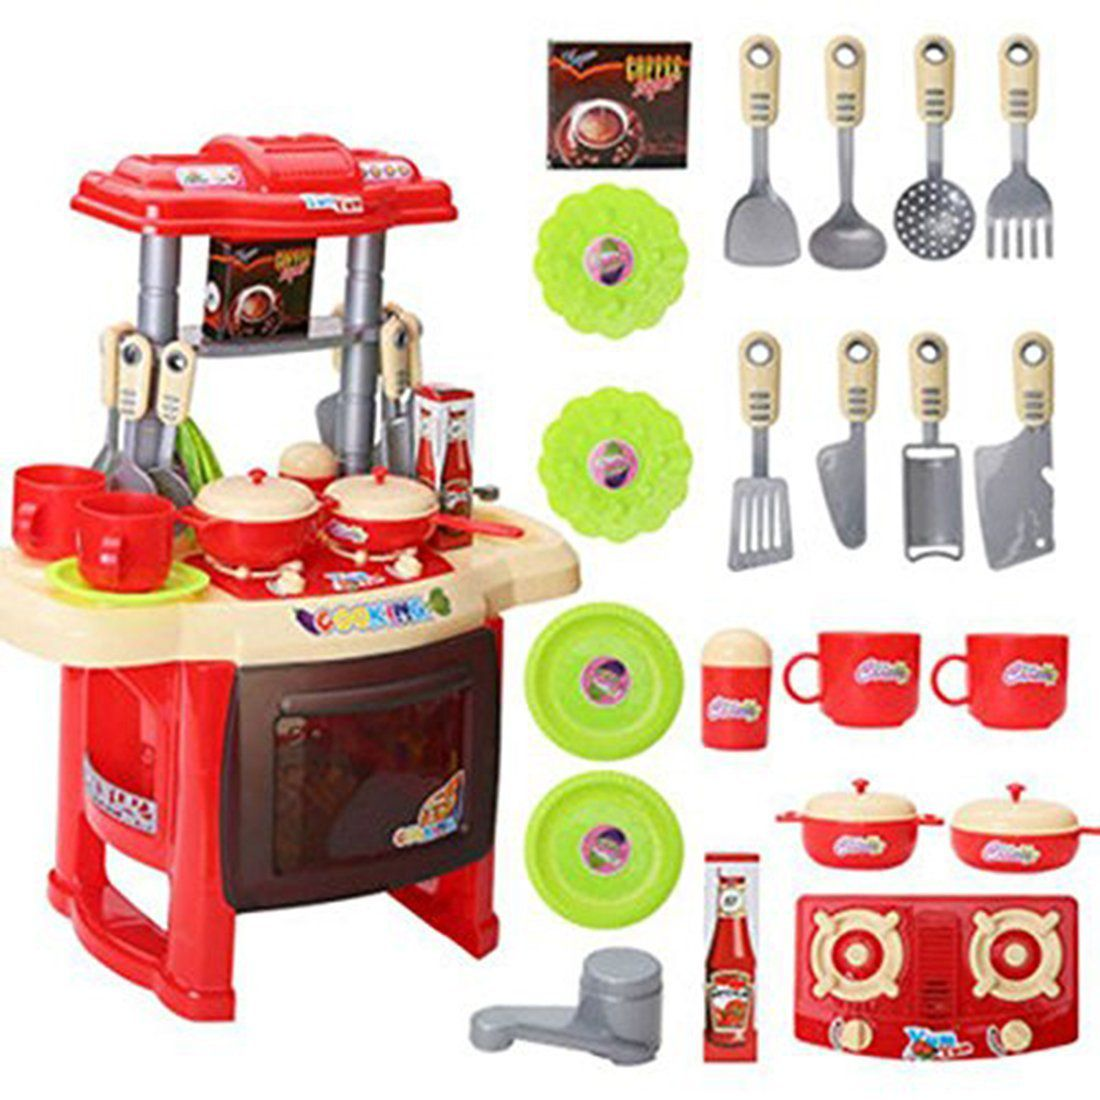 Webby kids kitchen set children kitchen toys large kitchen for Toy kitchen set